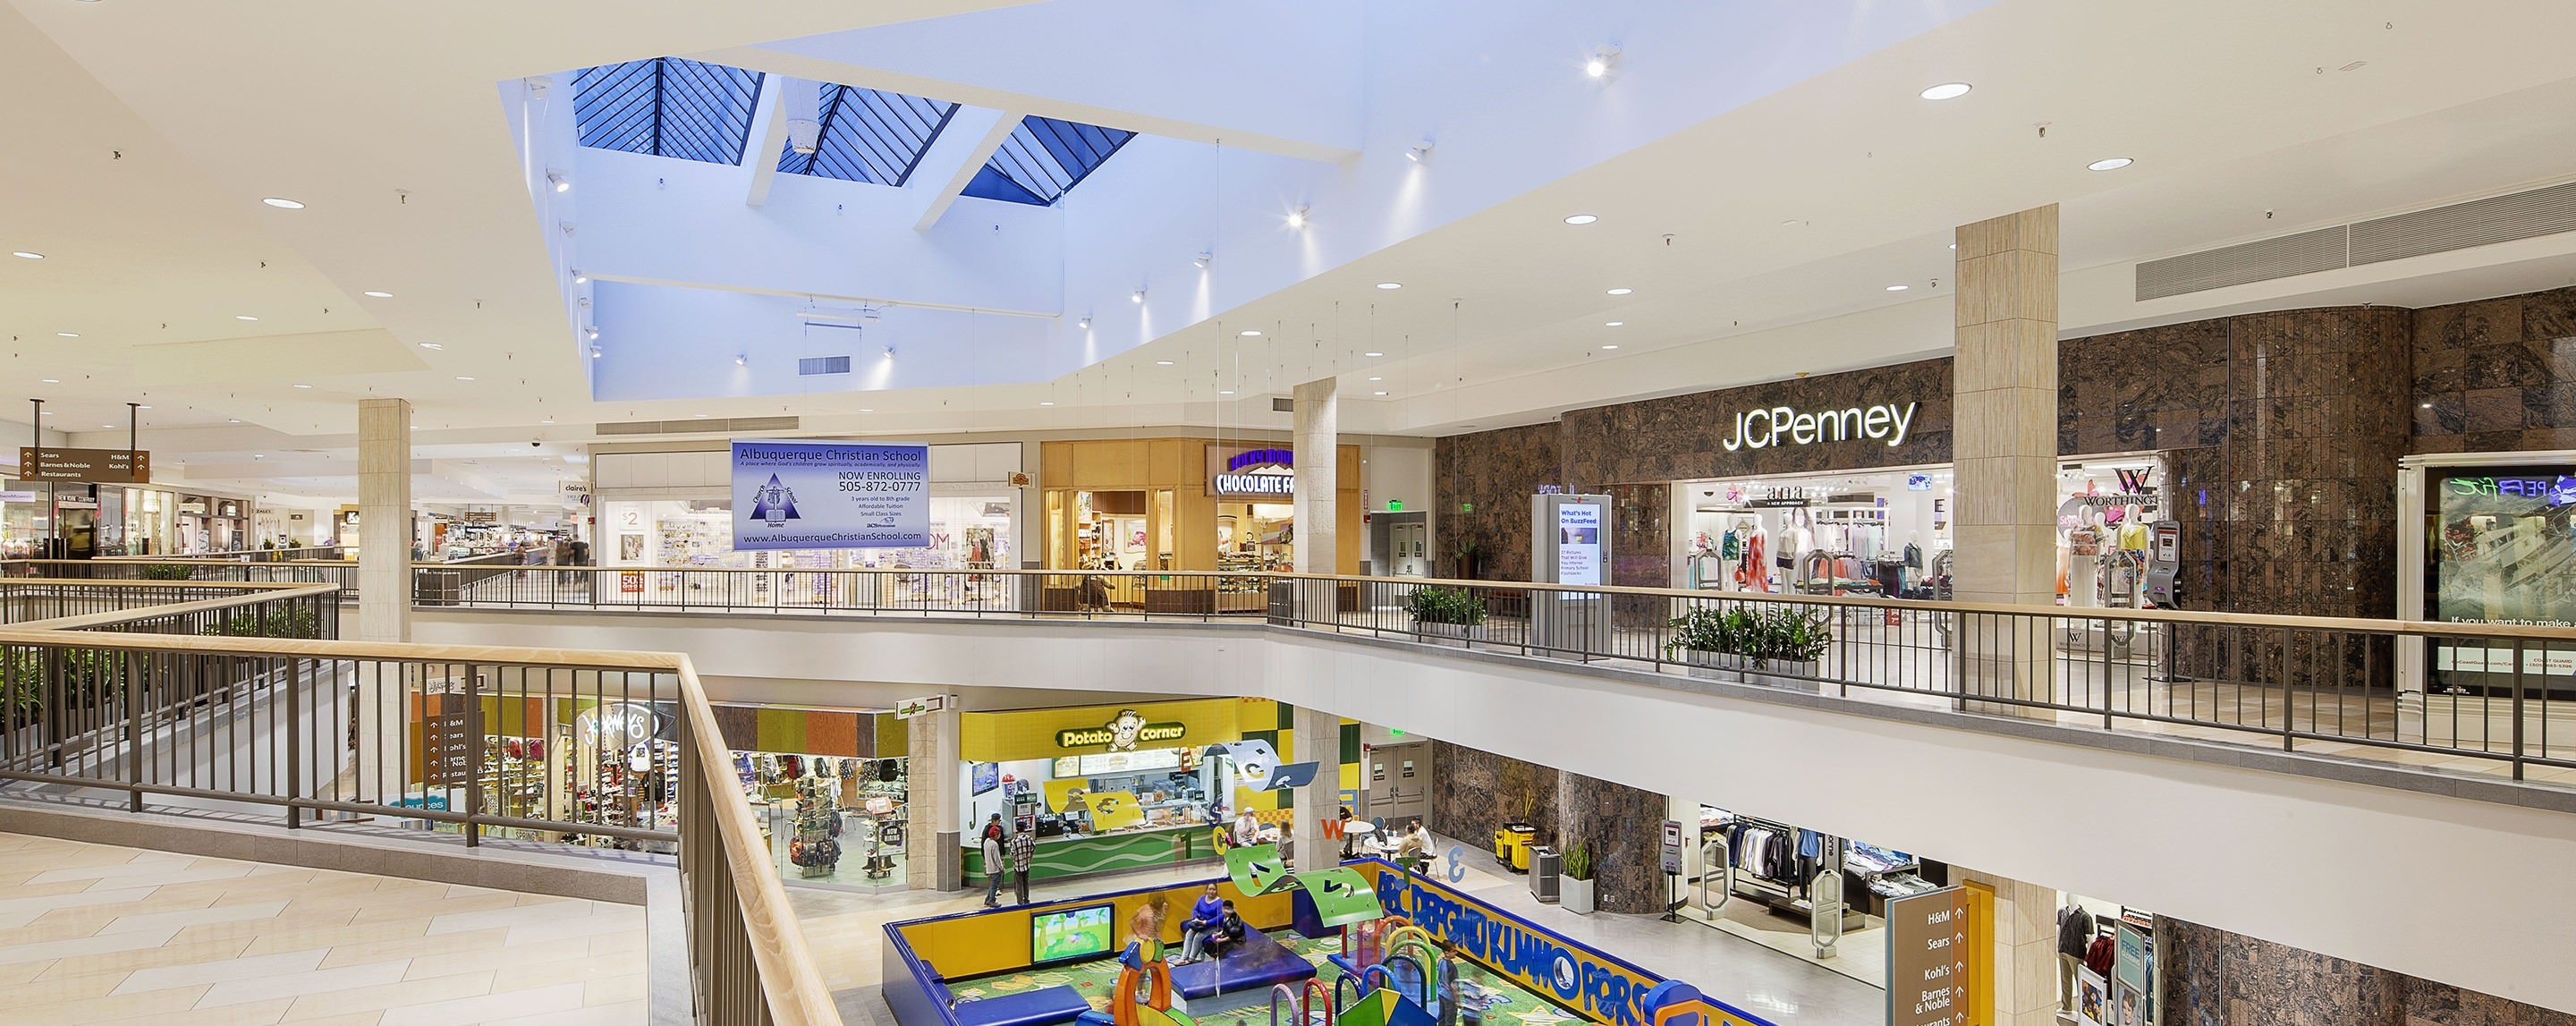 Walkways pass by stores such as JCPenney, Sears, Claire's, Potato Corner and Kohl's in an indoor mall.